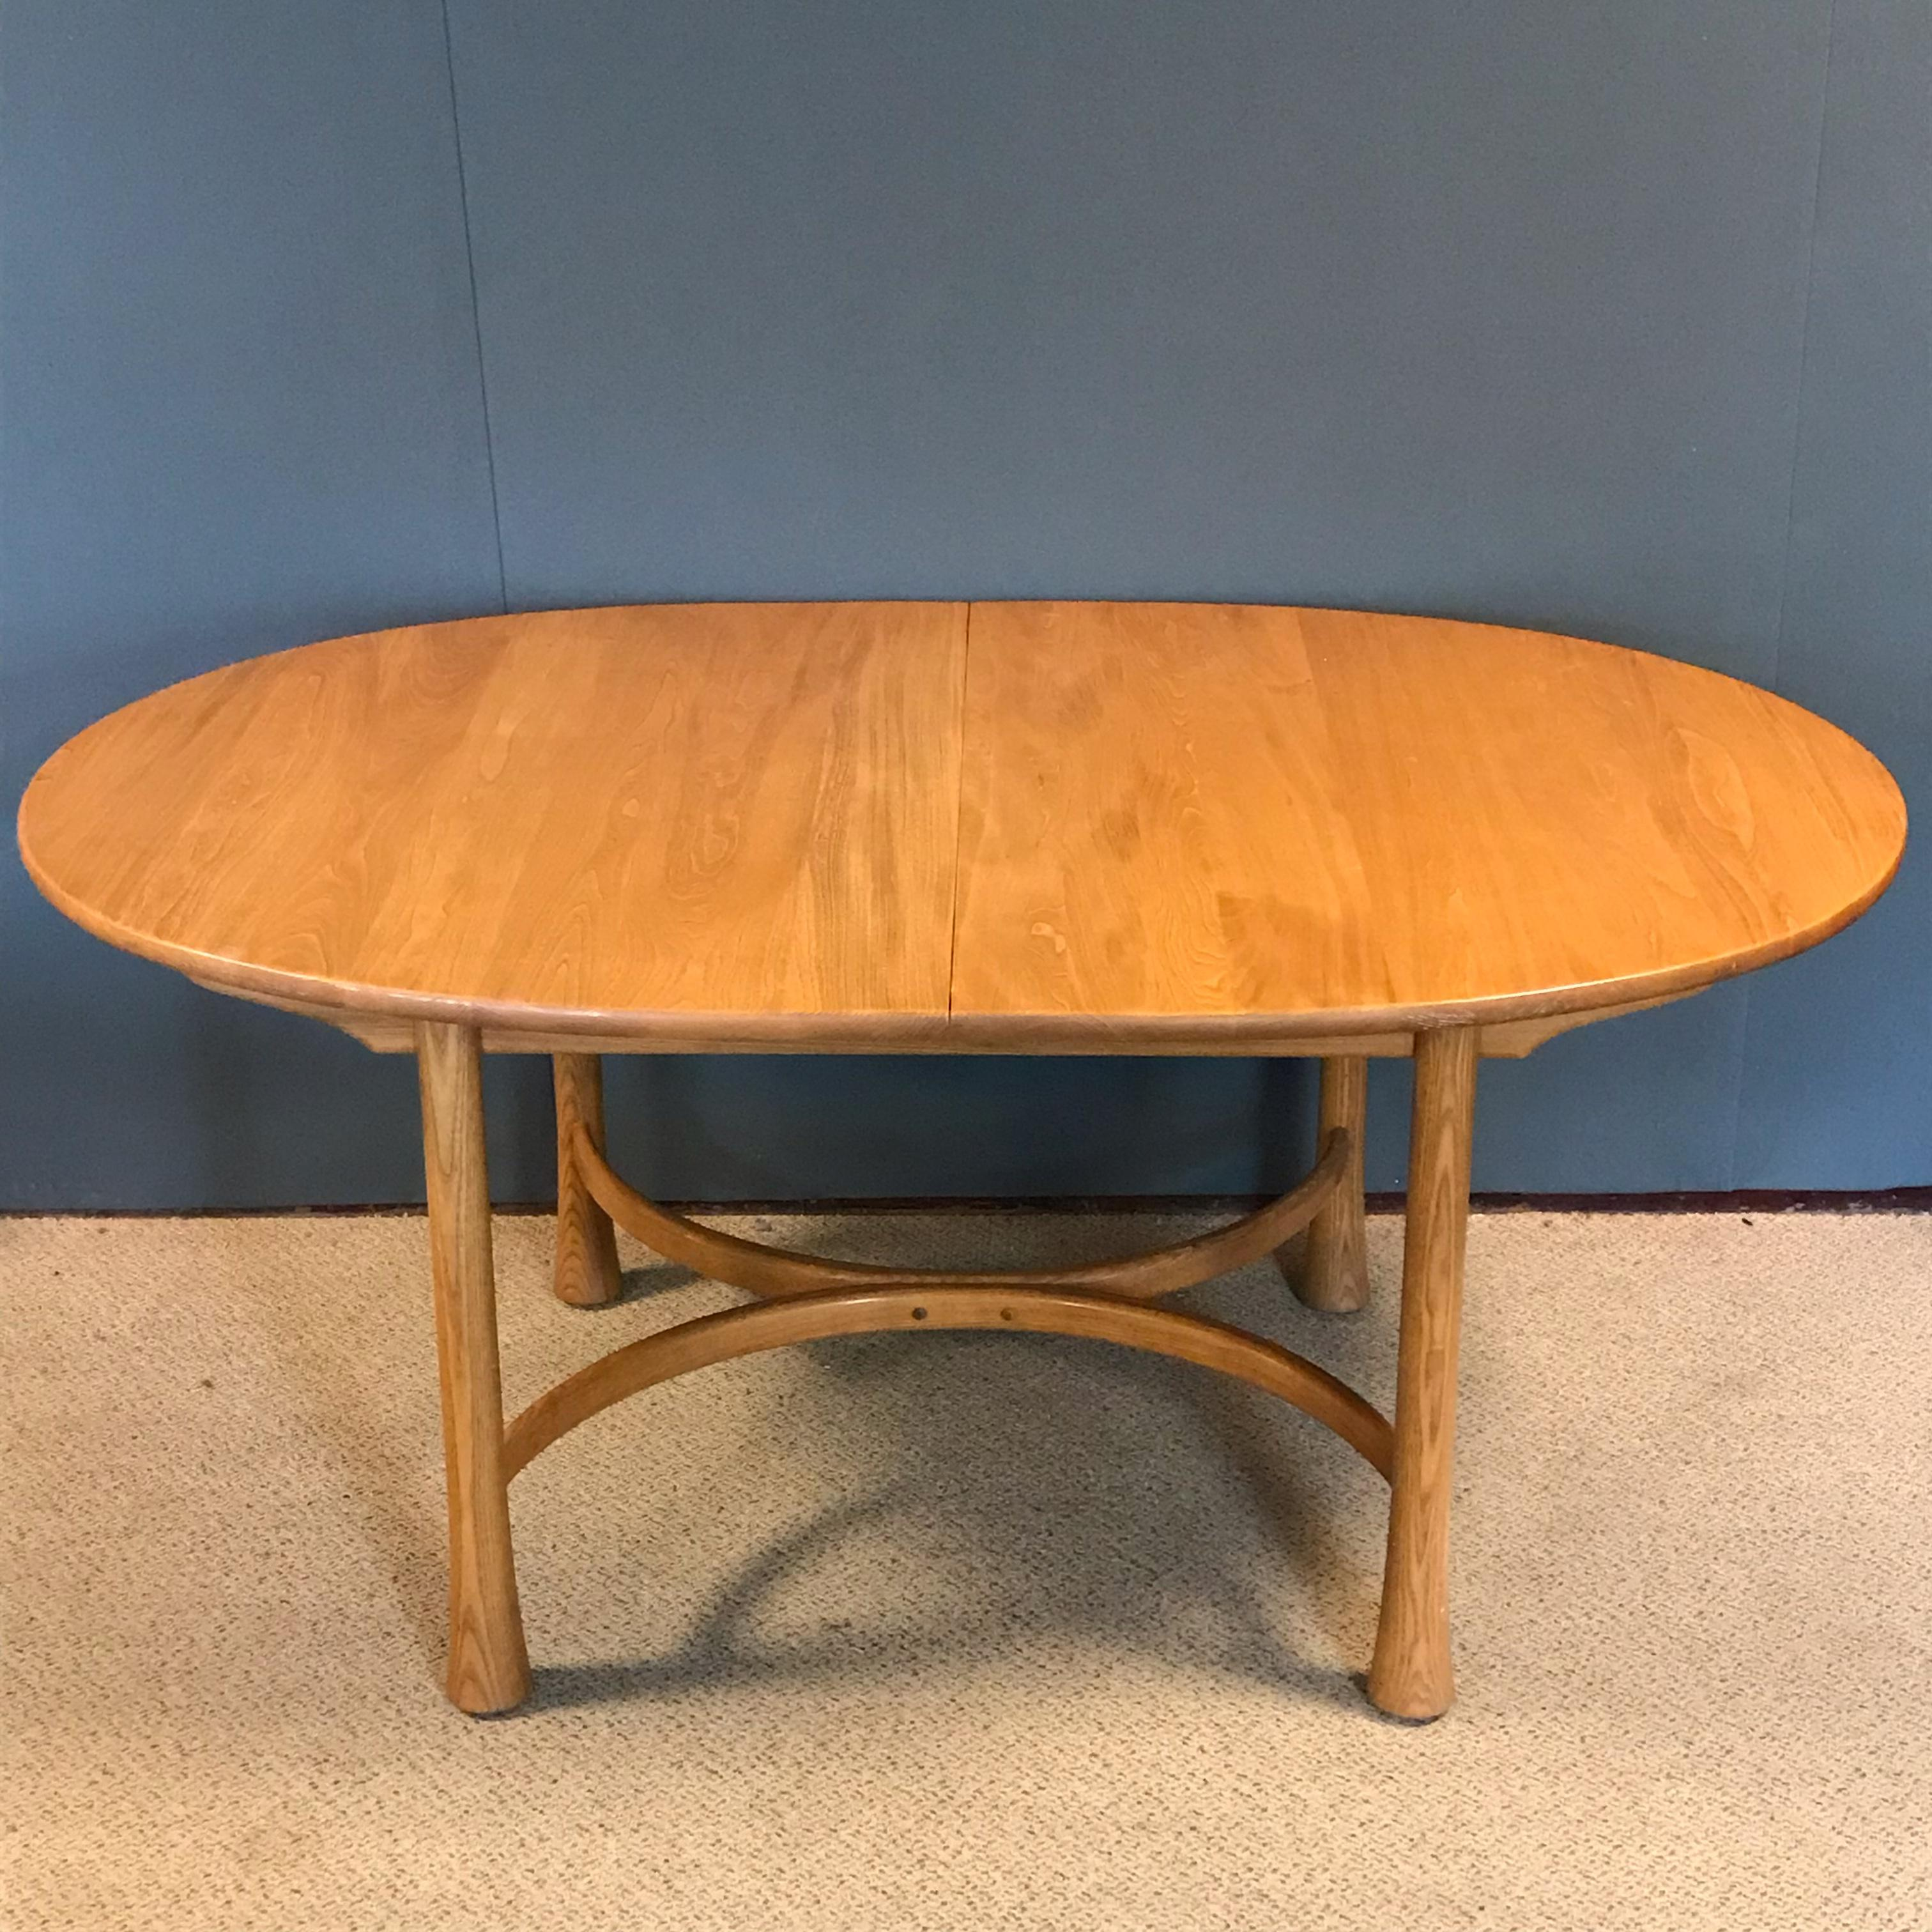 Ercol Saville Oval Extending Dining Table Antique Dining